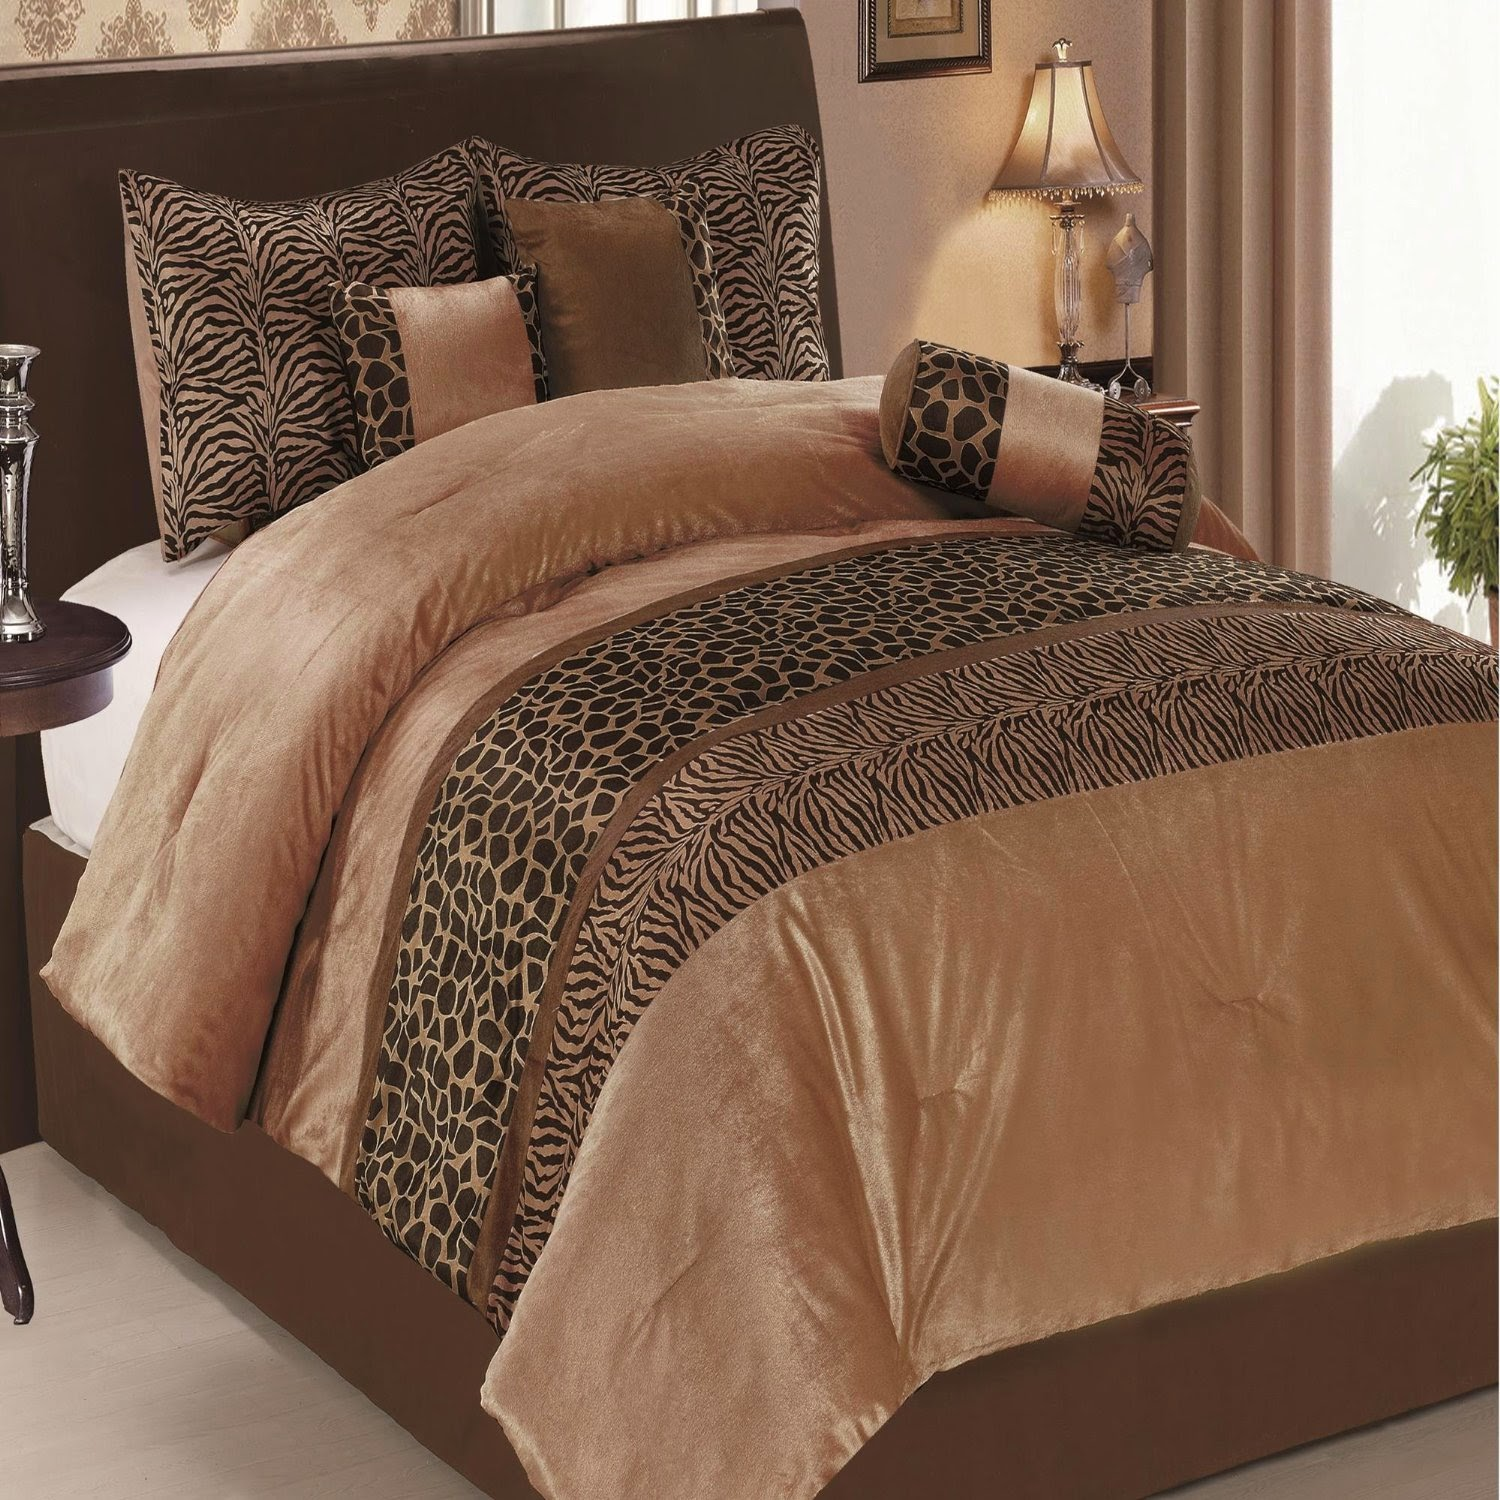 Leopard Print Themed Bedroom: Bedroom Decor Ideas And Designs: Top Ten Animal Pattern